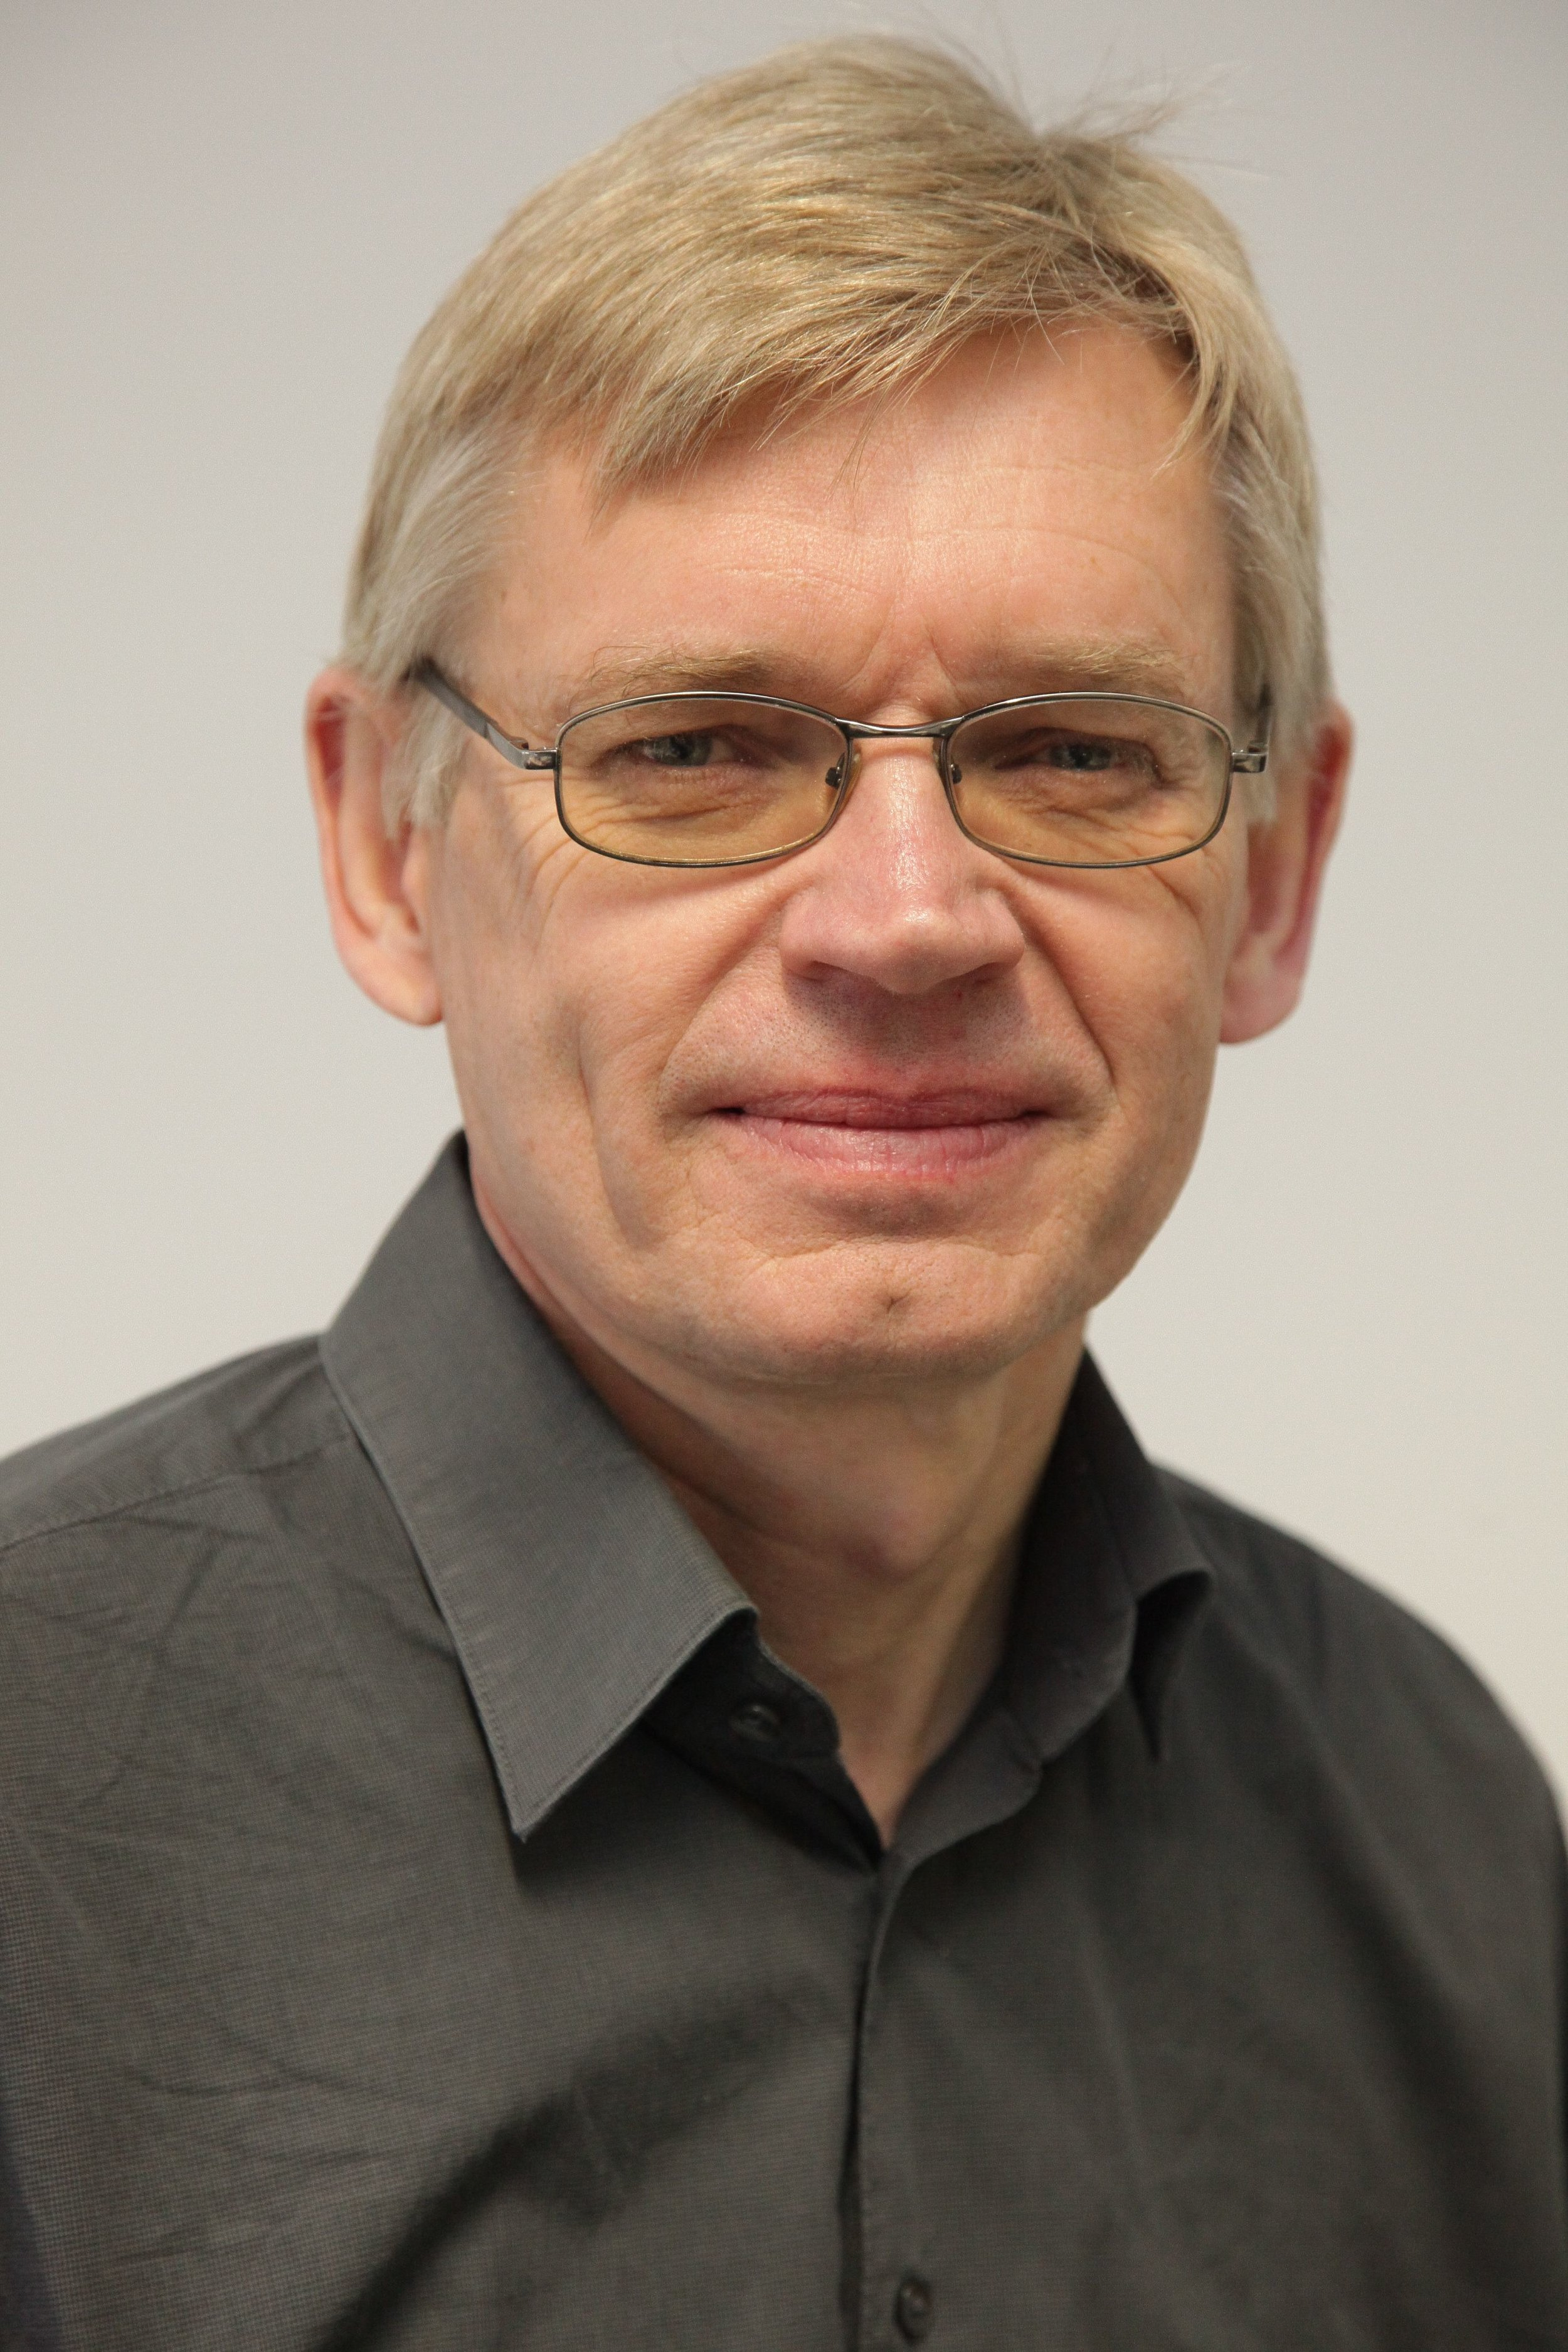 - I feel deeply honored to receive this prestigious award in recognition of the research I conducted with my extraordinary coworkers over many years. I hope the award will promote fundamental basic research for future applications that we have not the slightest idea about quite yet…- Peter Hegemann